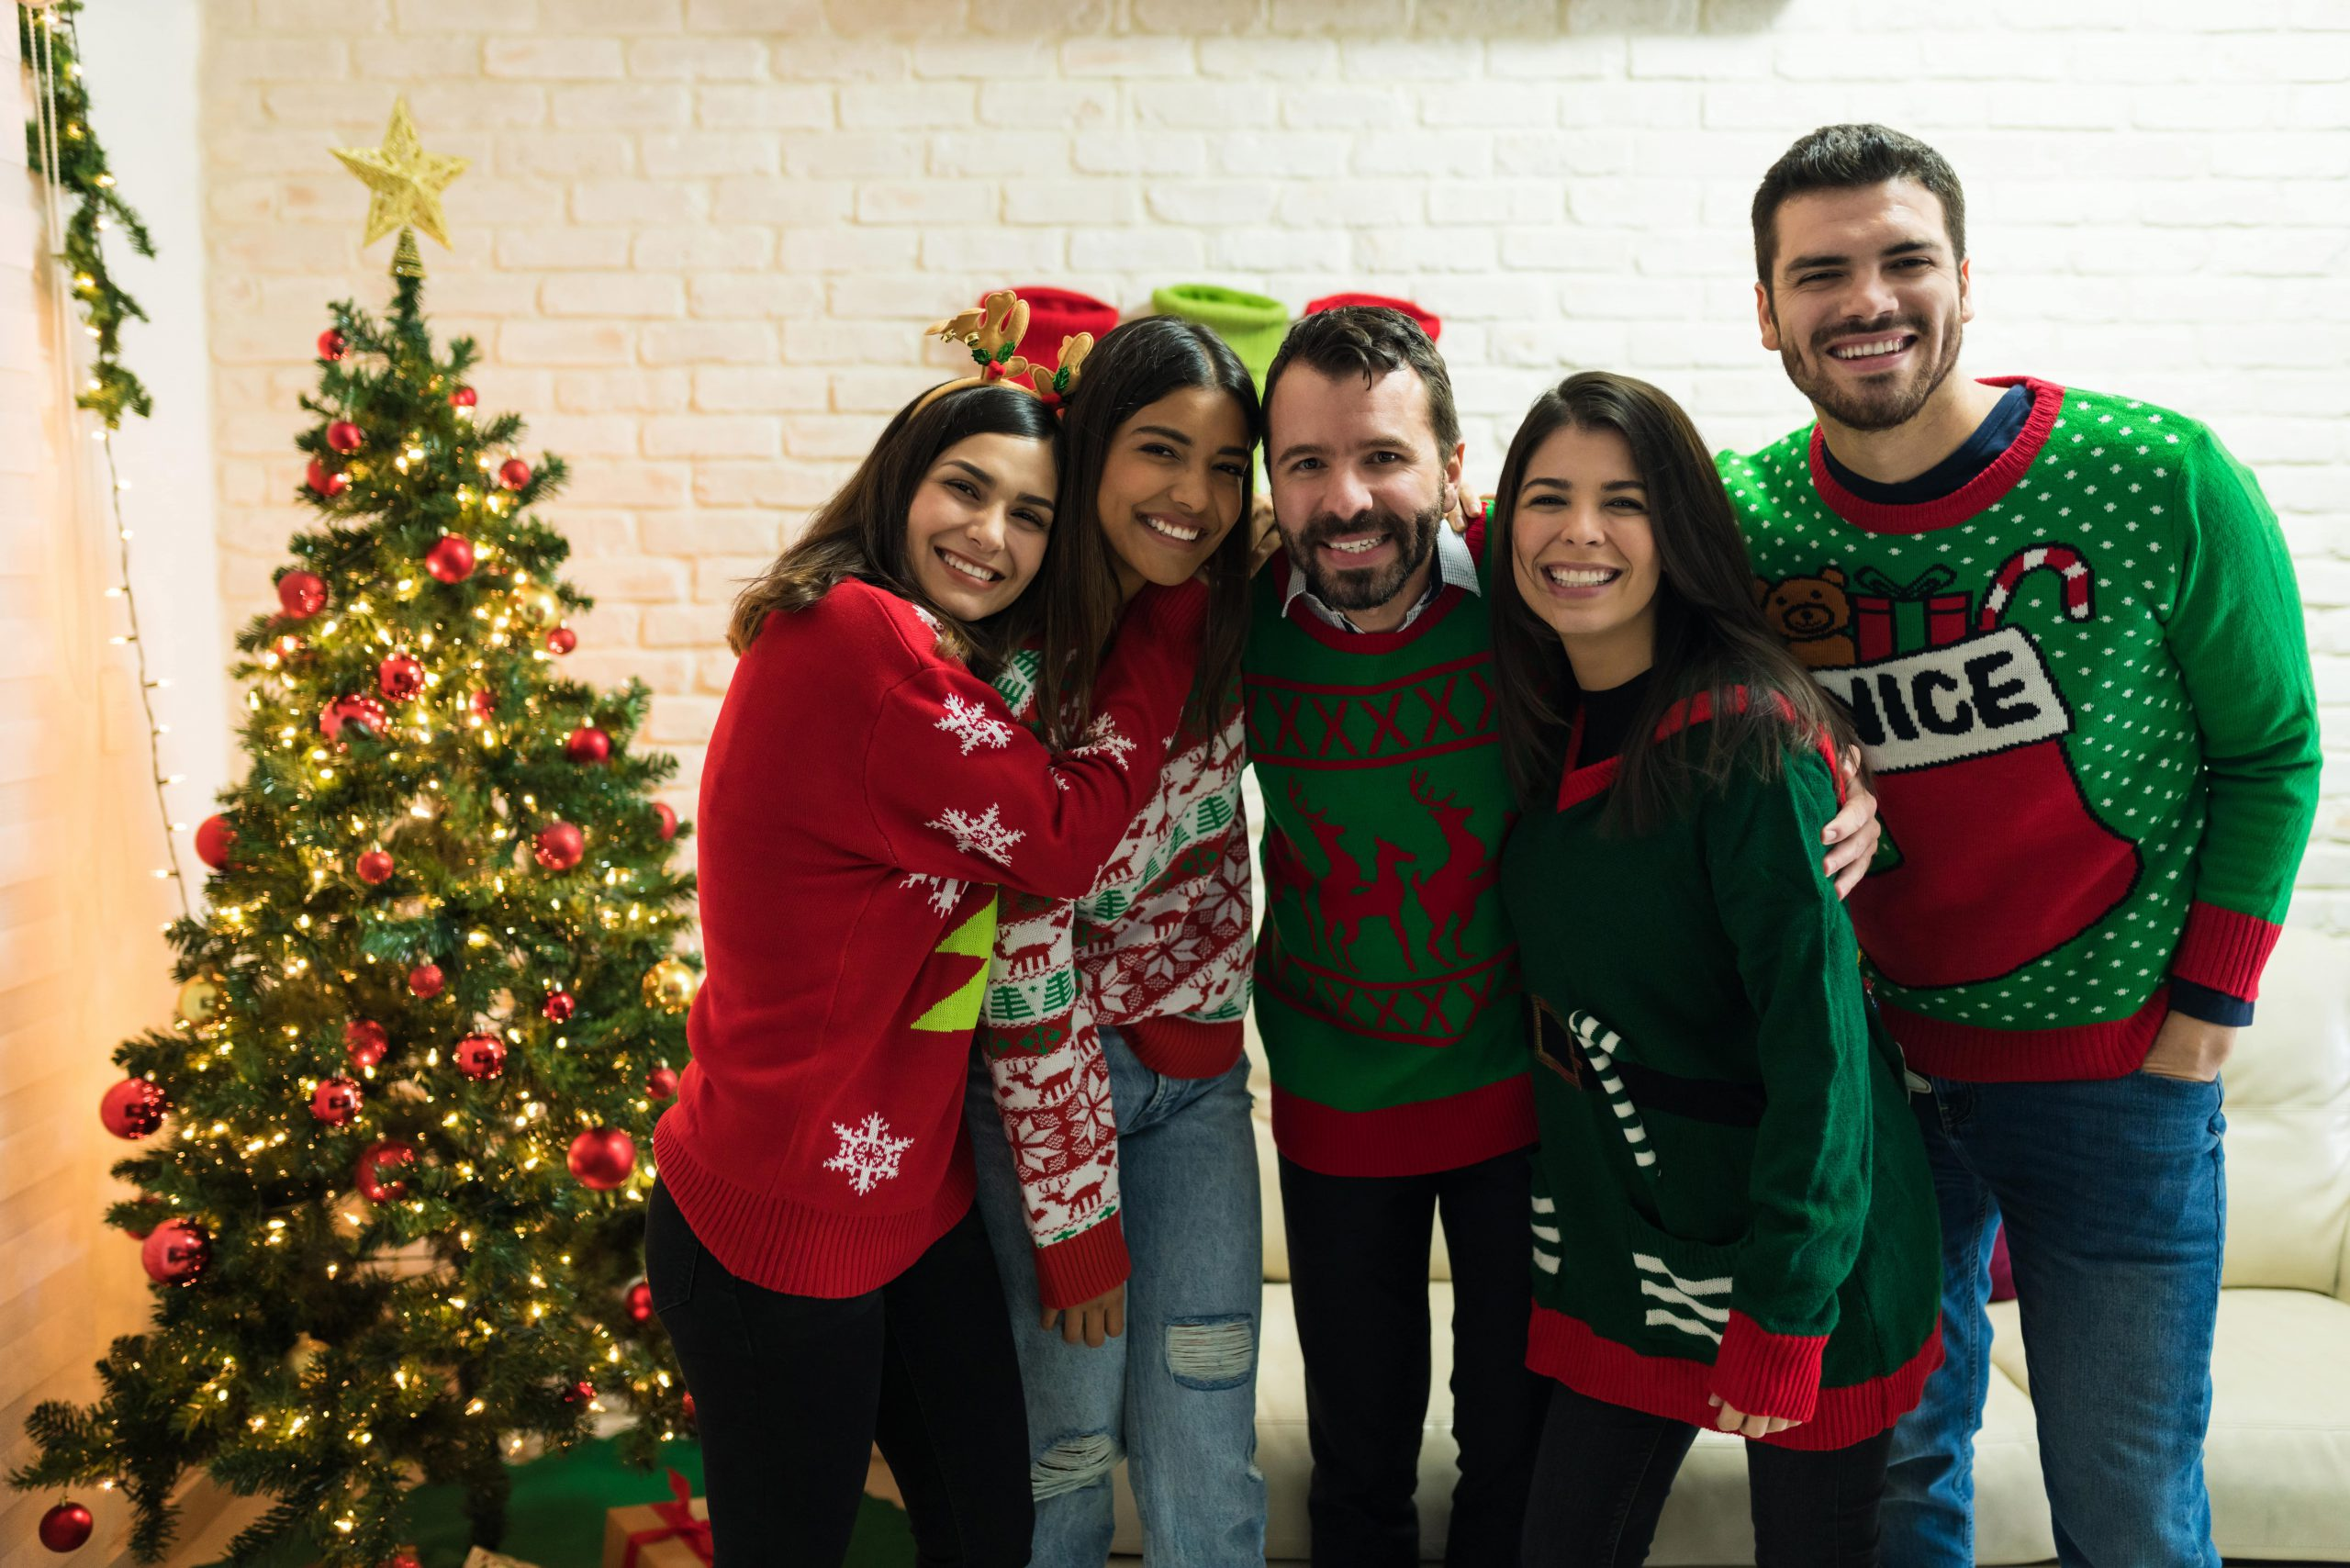 Group of friends wearing ugly Christmas sweaters